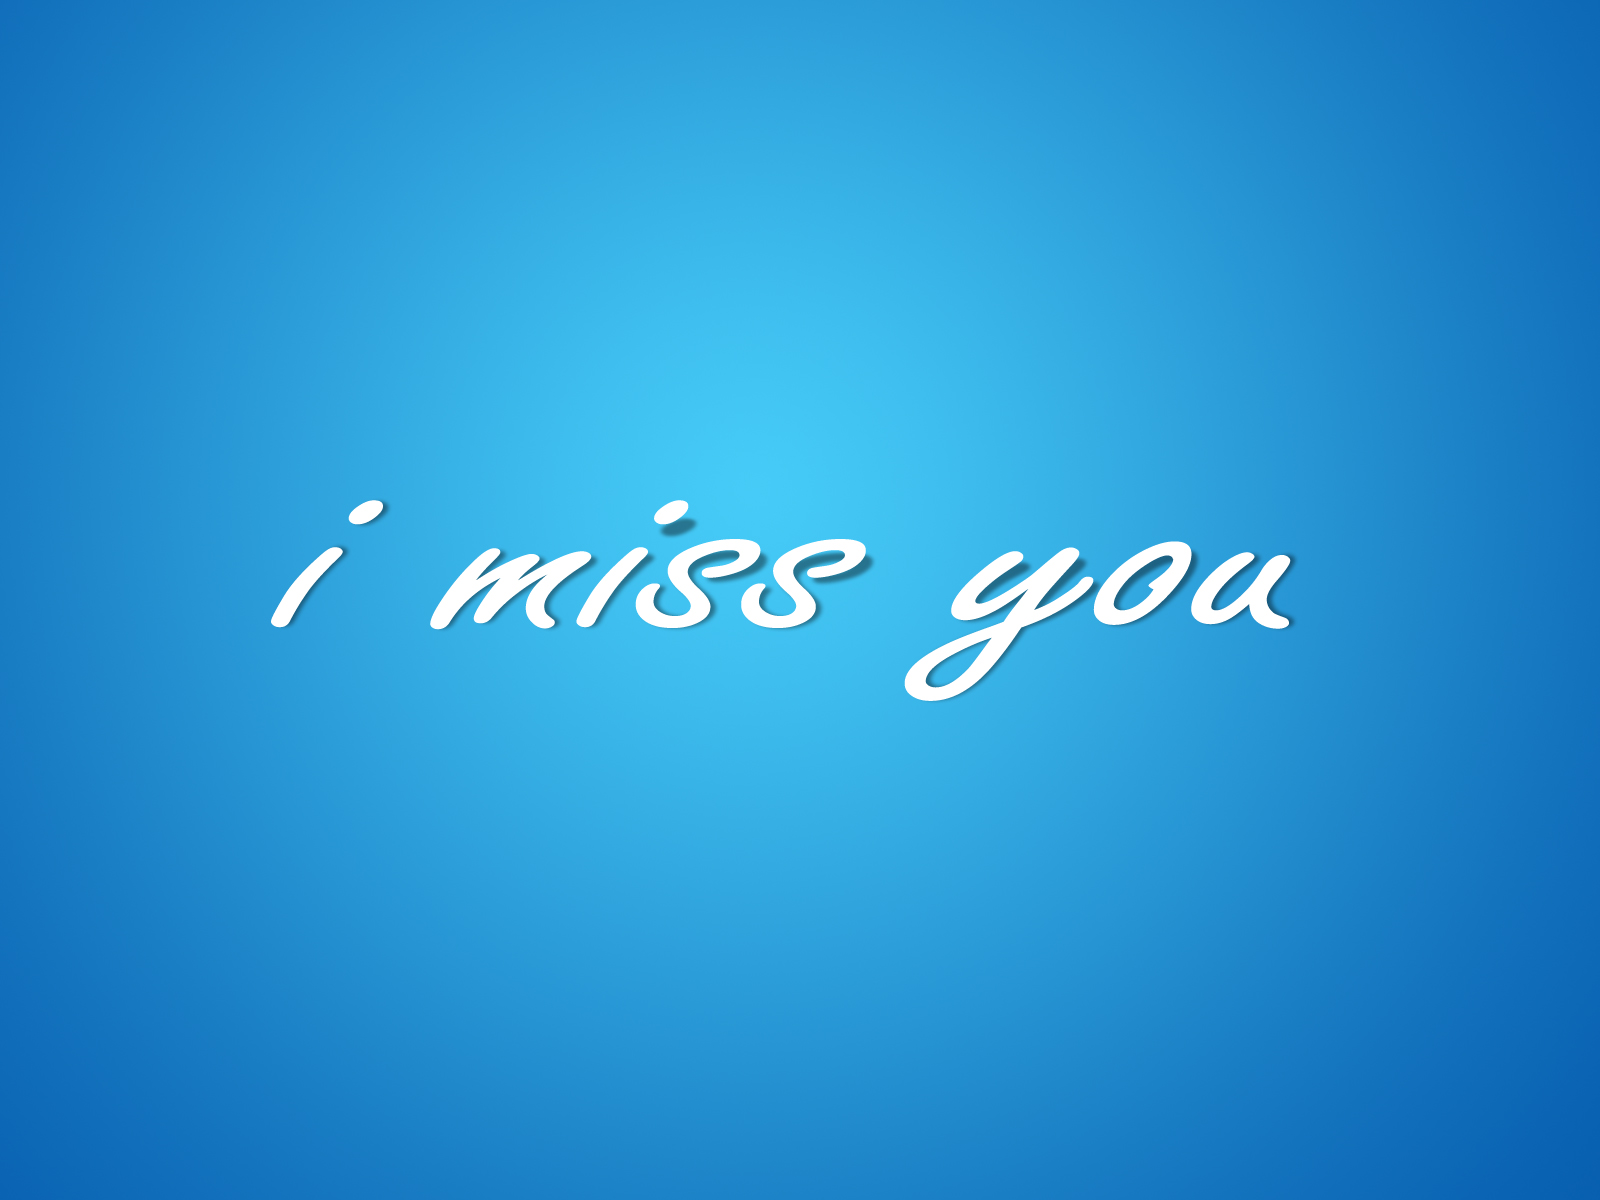 Simple I Miss You Text HD Wallpapers Desktop Wallpapers 1600x1200